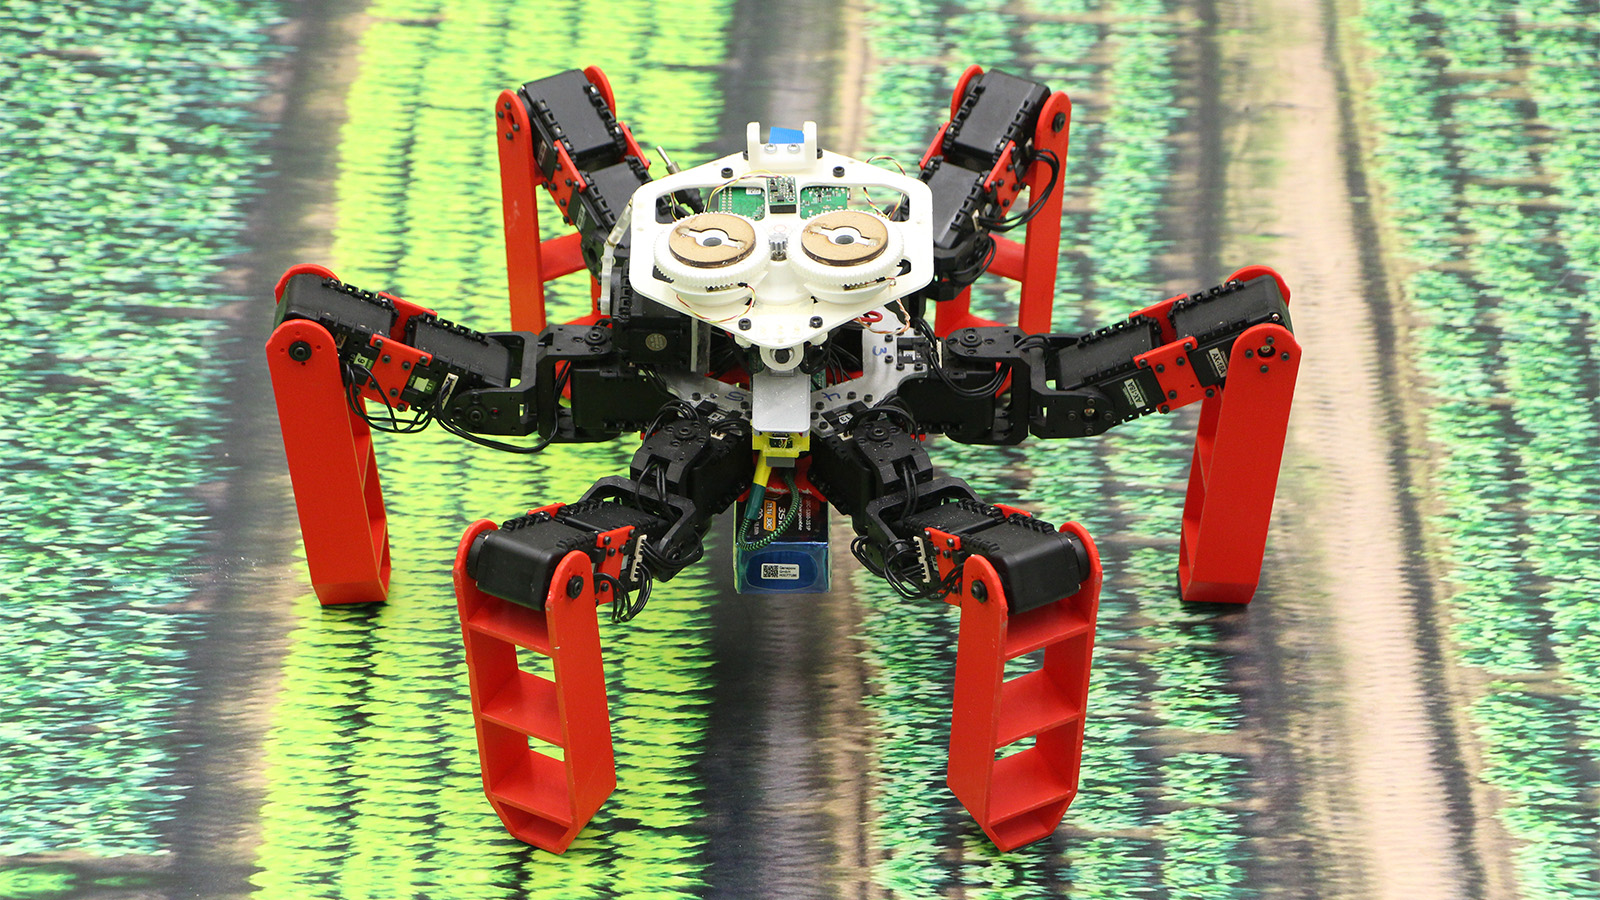 'AntBot' Uses Celestial Navigation Instead of GPS